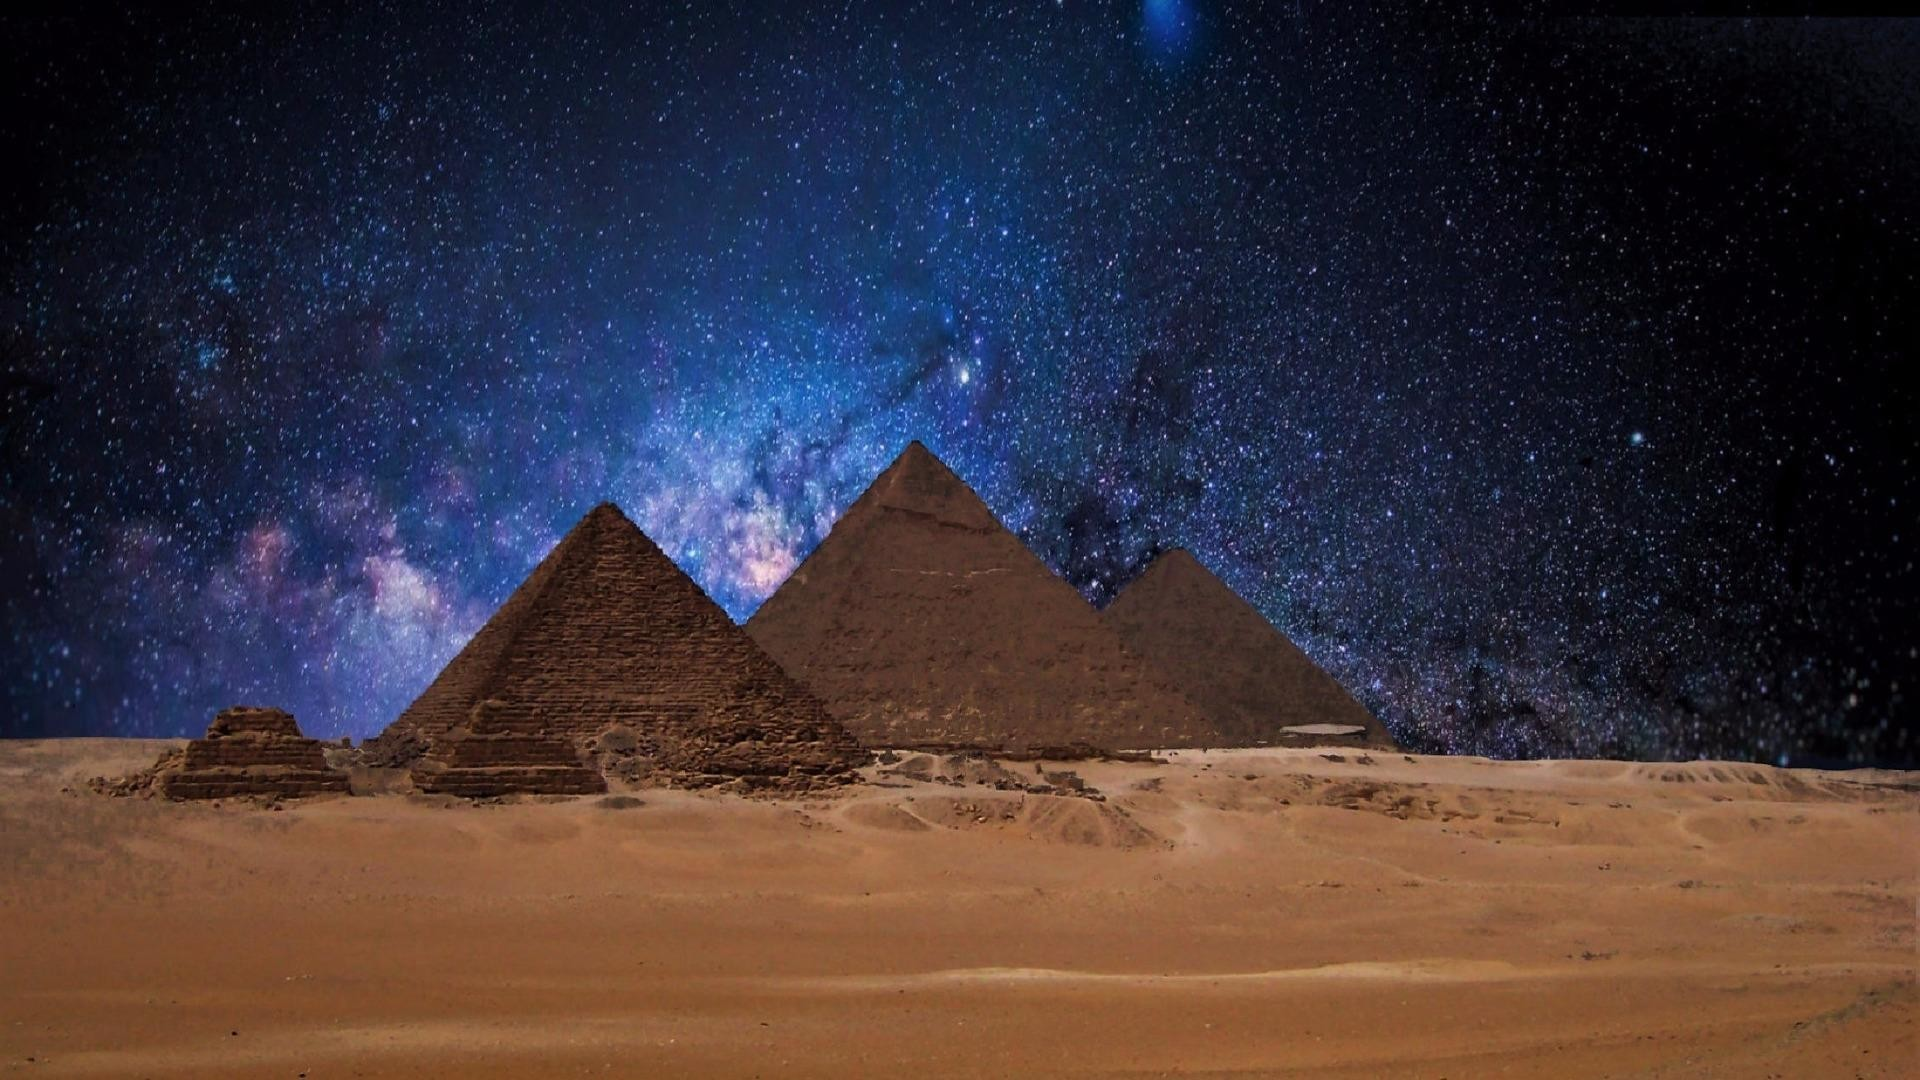 Pyramid Ancient Egypt Astronomy Ufo Hd Poster Art Posters Art